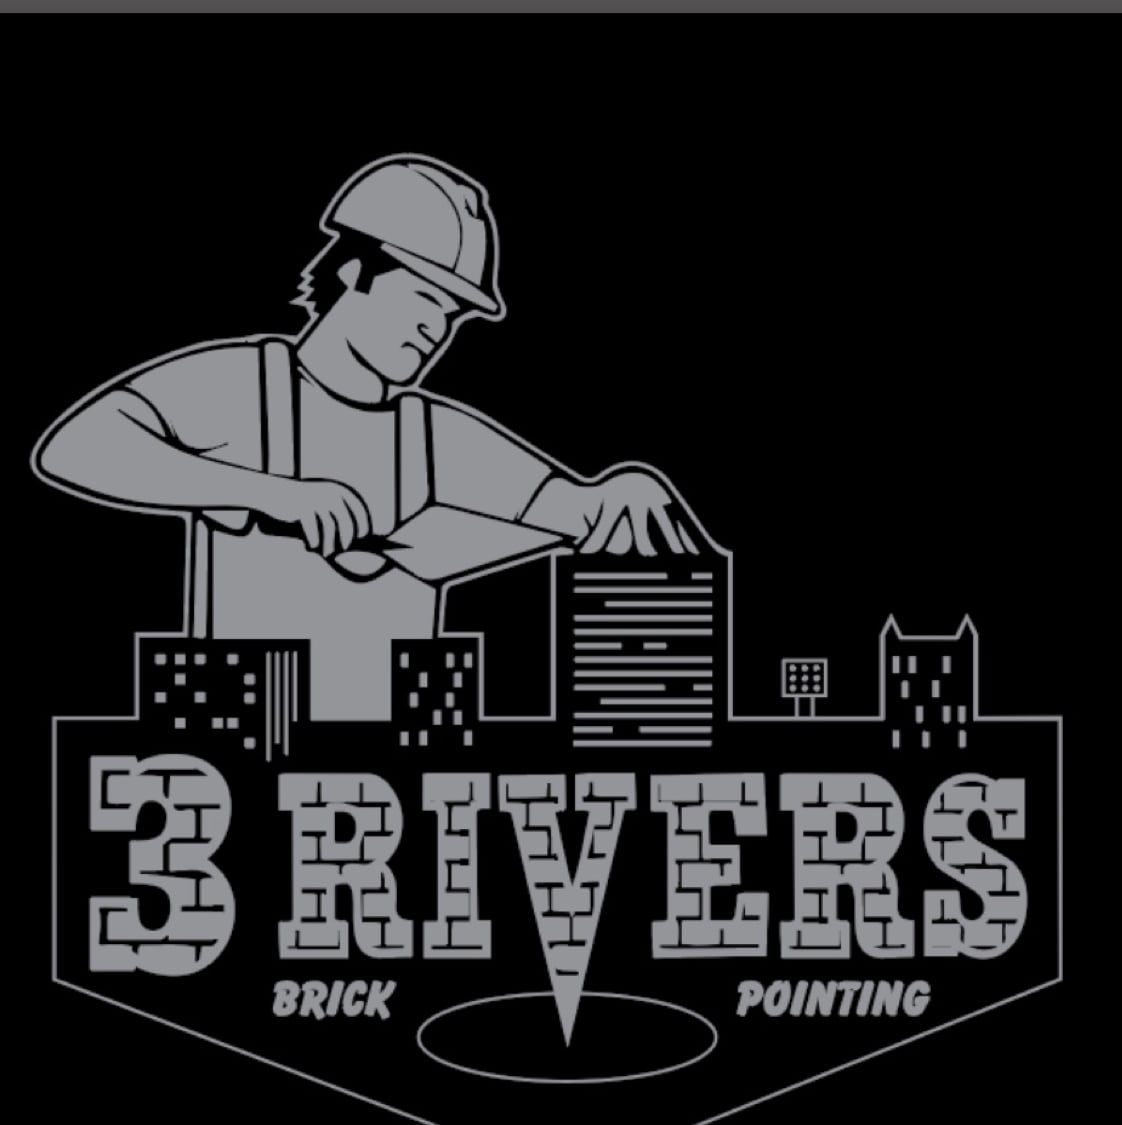 3 Rivers Brick Pointing & Cleaning